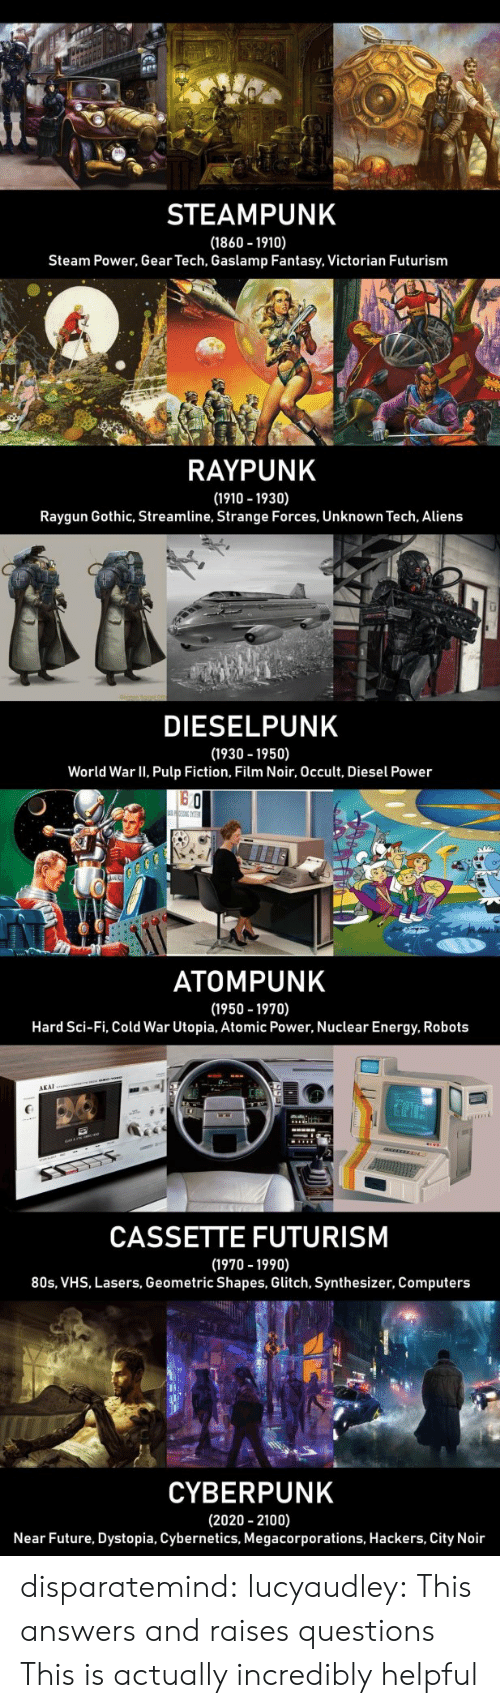 sci fi: STEAMPUNK  (1860 1910)  Steam Power, Gear Tech, Gaslamp Fantasy, Victorian Futurism  RAYPUNK  (1910 -1930)  Raygun Gothic, Streamline, Strange Forces, Unknown Tech, Aliens  LI  DIESELPUNK  (1930 -1950)  World War II, Pulp Fiction, Film Noir, Occult, Diesel Power  o Ch  ATOMPUNK  (1950 -1970)  Hard Sci-Fi, Cold War Utopia, Atomic Power, Nuclear Energy, Robots  AKAI  CASSETTE FUTURISM  (1970 -1990)  80s, VHS, Lasers, Geometric Shapes, Glitch, Synthesizer, Computers  CYBERPUNK  (2020 2100)  Near Future, Dystopia, Cybernetics, Megacorporations, Hackers, City Noir disparatemind: lucyaudley: This answers and raises questions   This is actually incredibly helpful